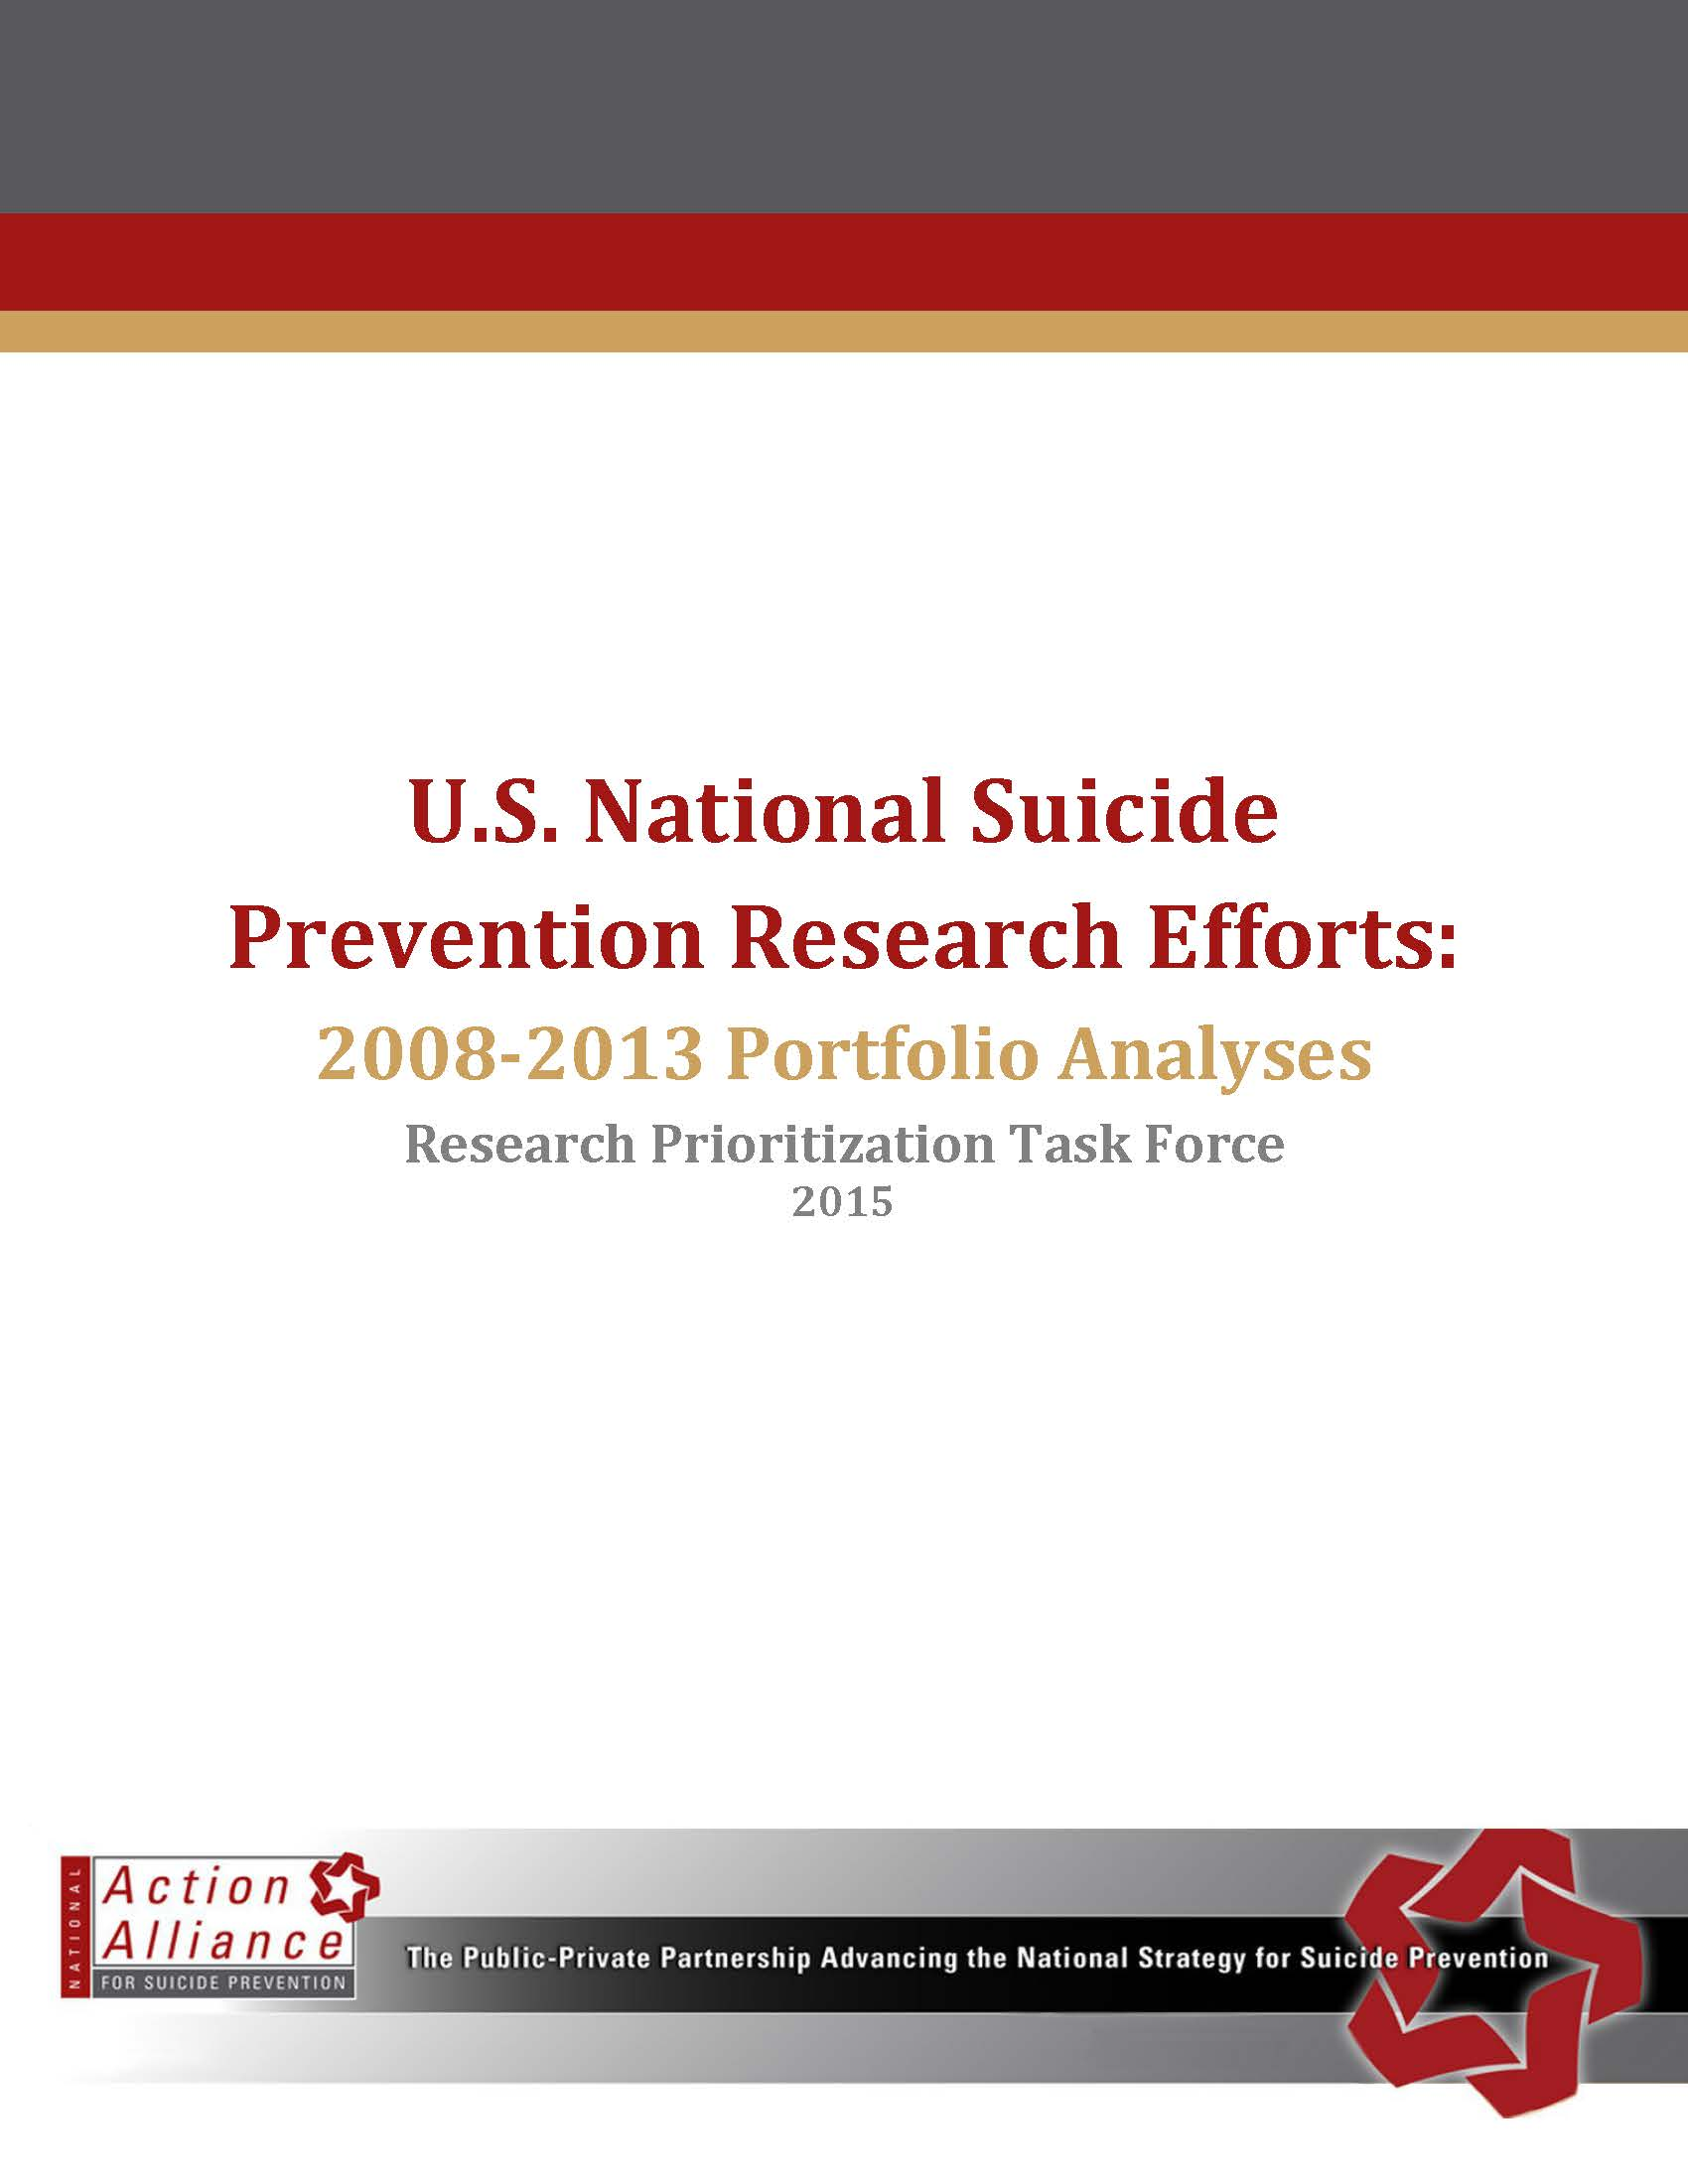 U.S. National Suicide Prevention Research Efforts: 2008-2013 Portfolio Analyses